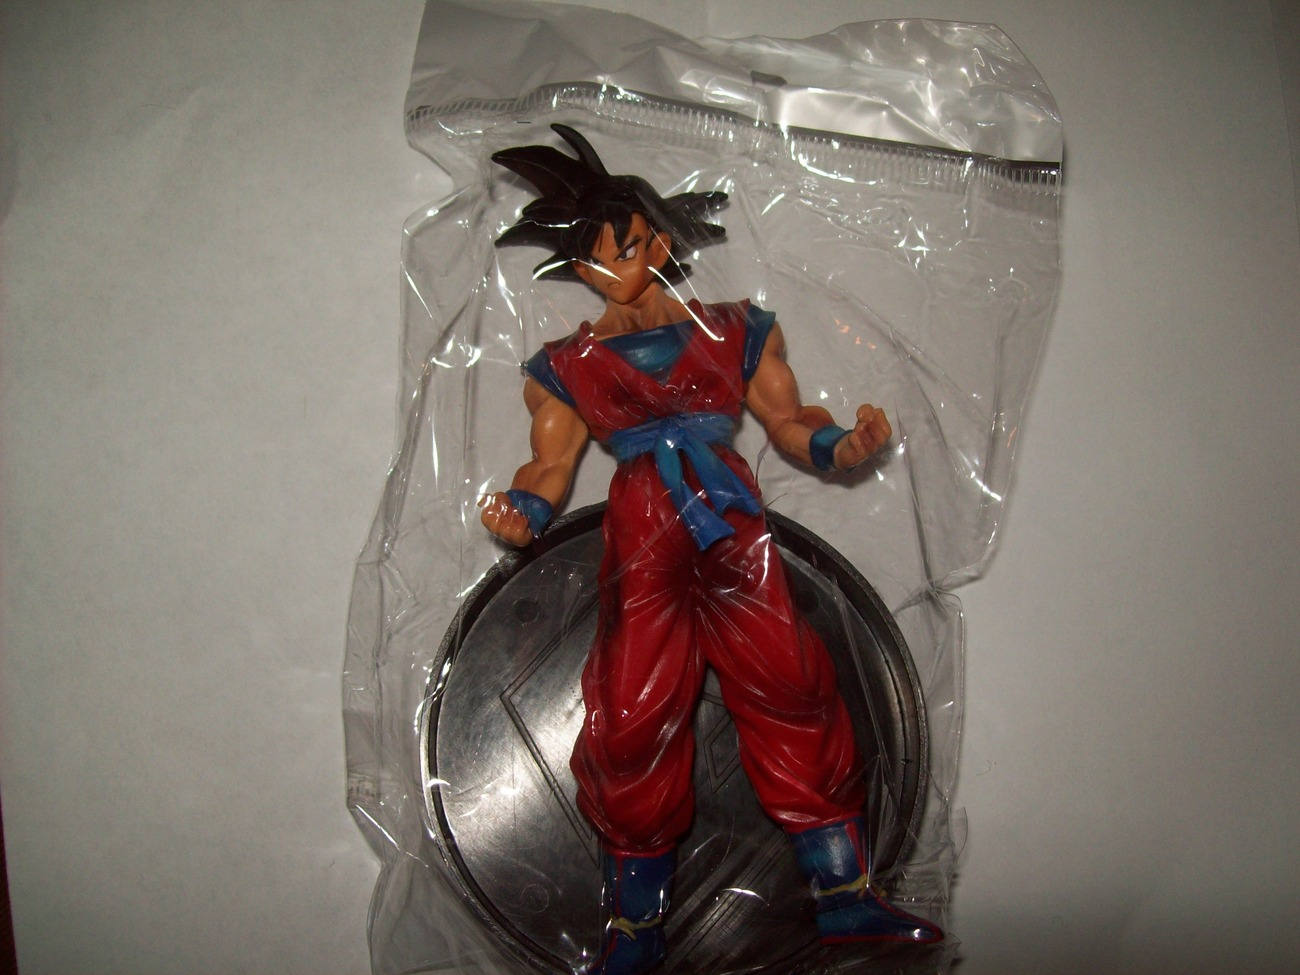 "FREE SHIP goku dragonball z figure brand new in bag 4.5"" w/ stand"